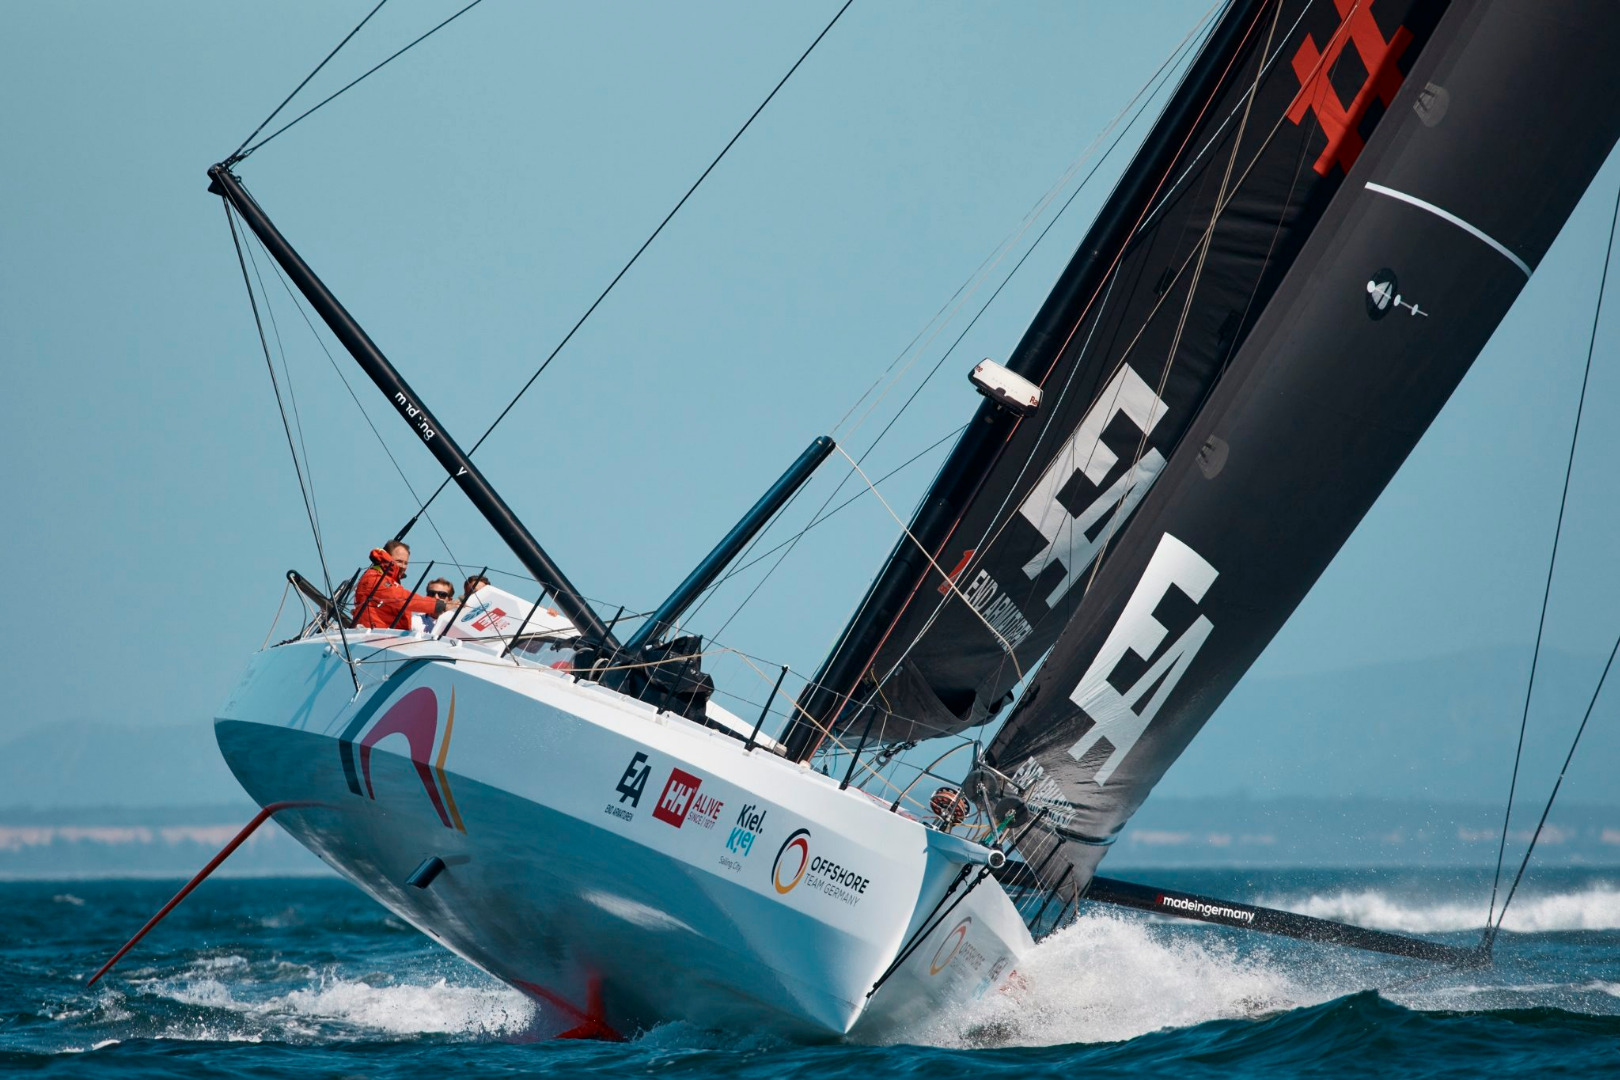 This is the canting keel non foiling Offshore Team Germany (ex Acciona) IMOCA Open 60 by designers Owen Clarke Design taking part in the Ocean Race Europe